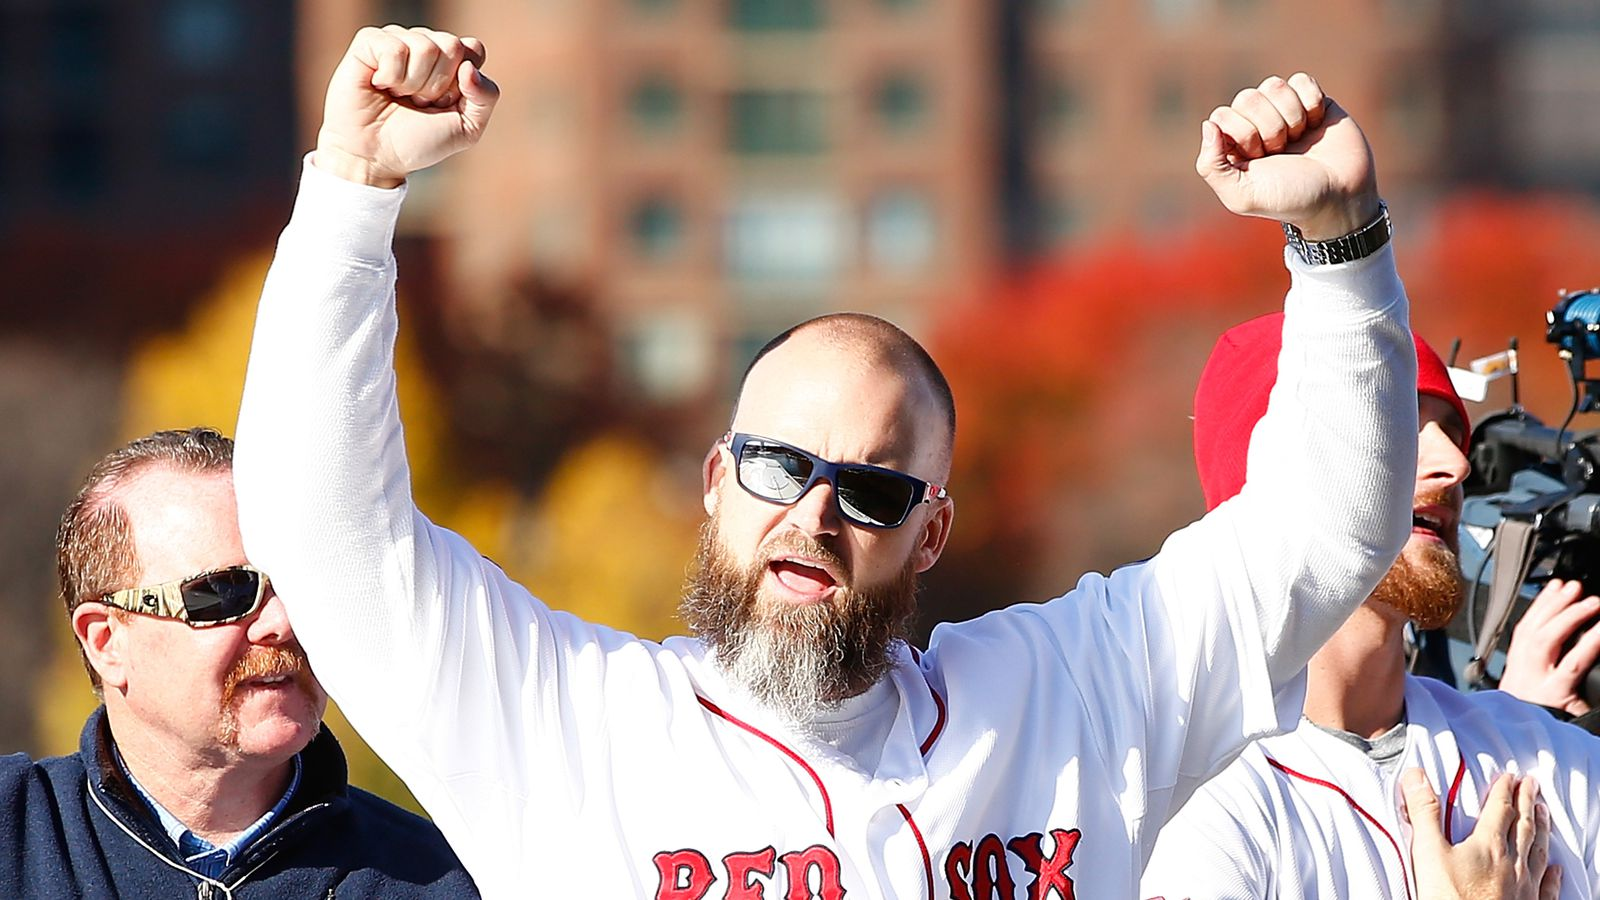 Red sox parade photos 2018 Always Have Popsicles: The Handbook to Help You Be